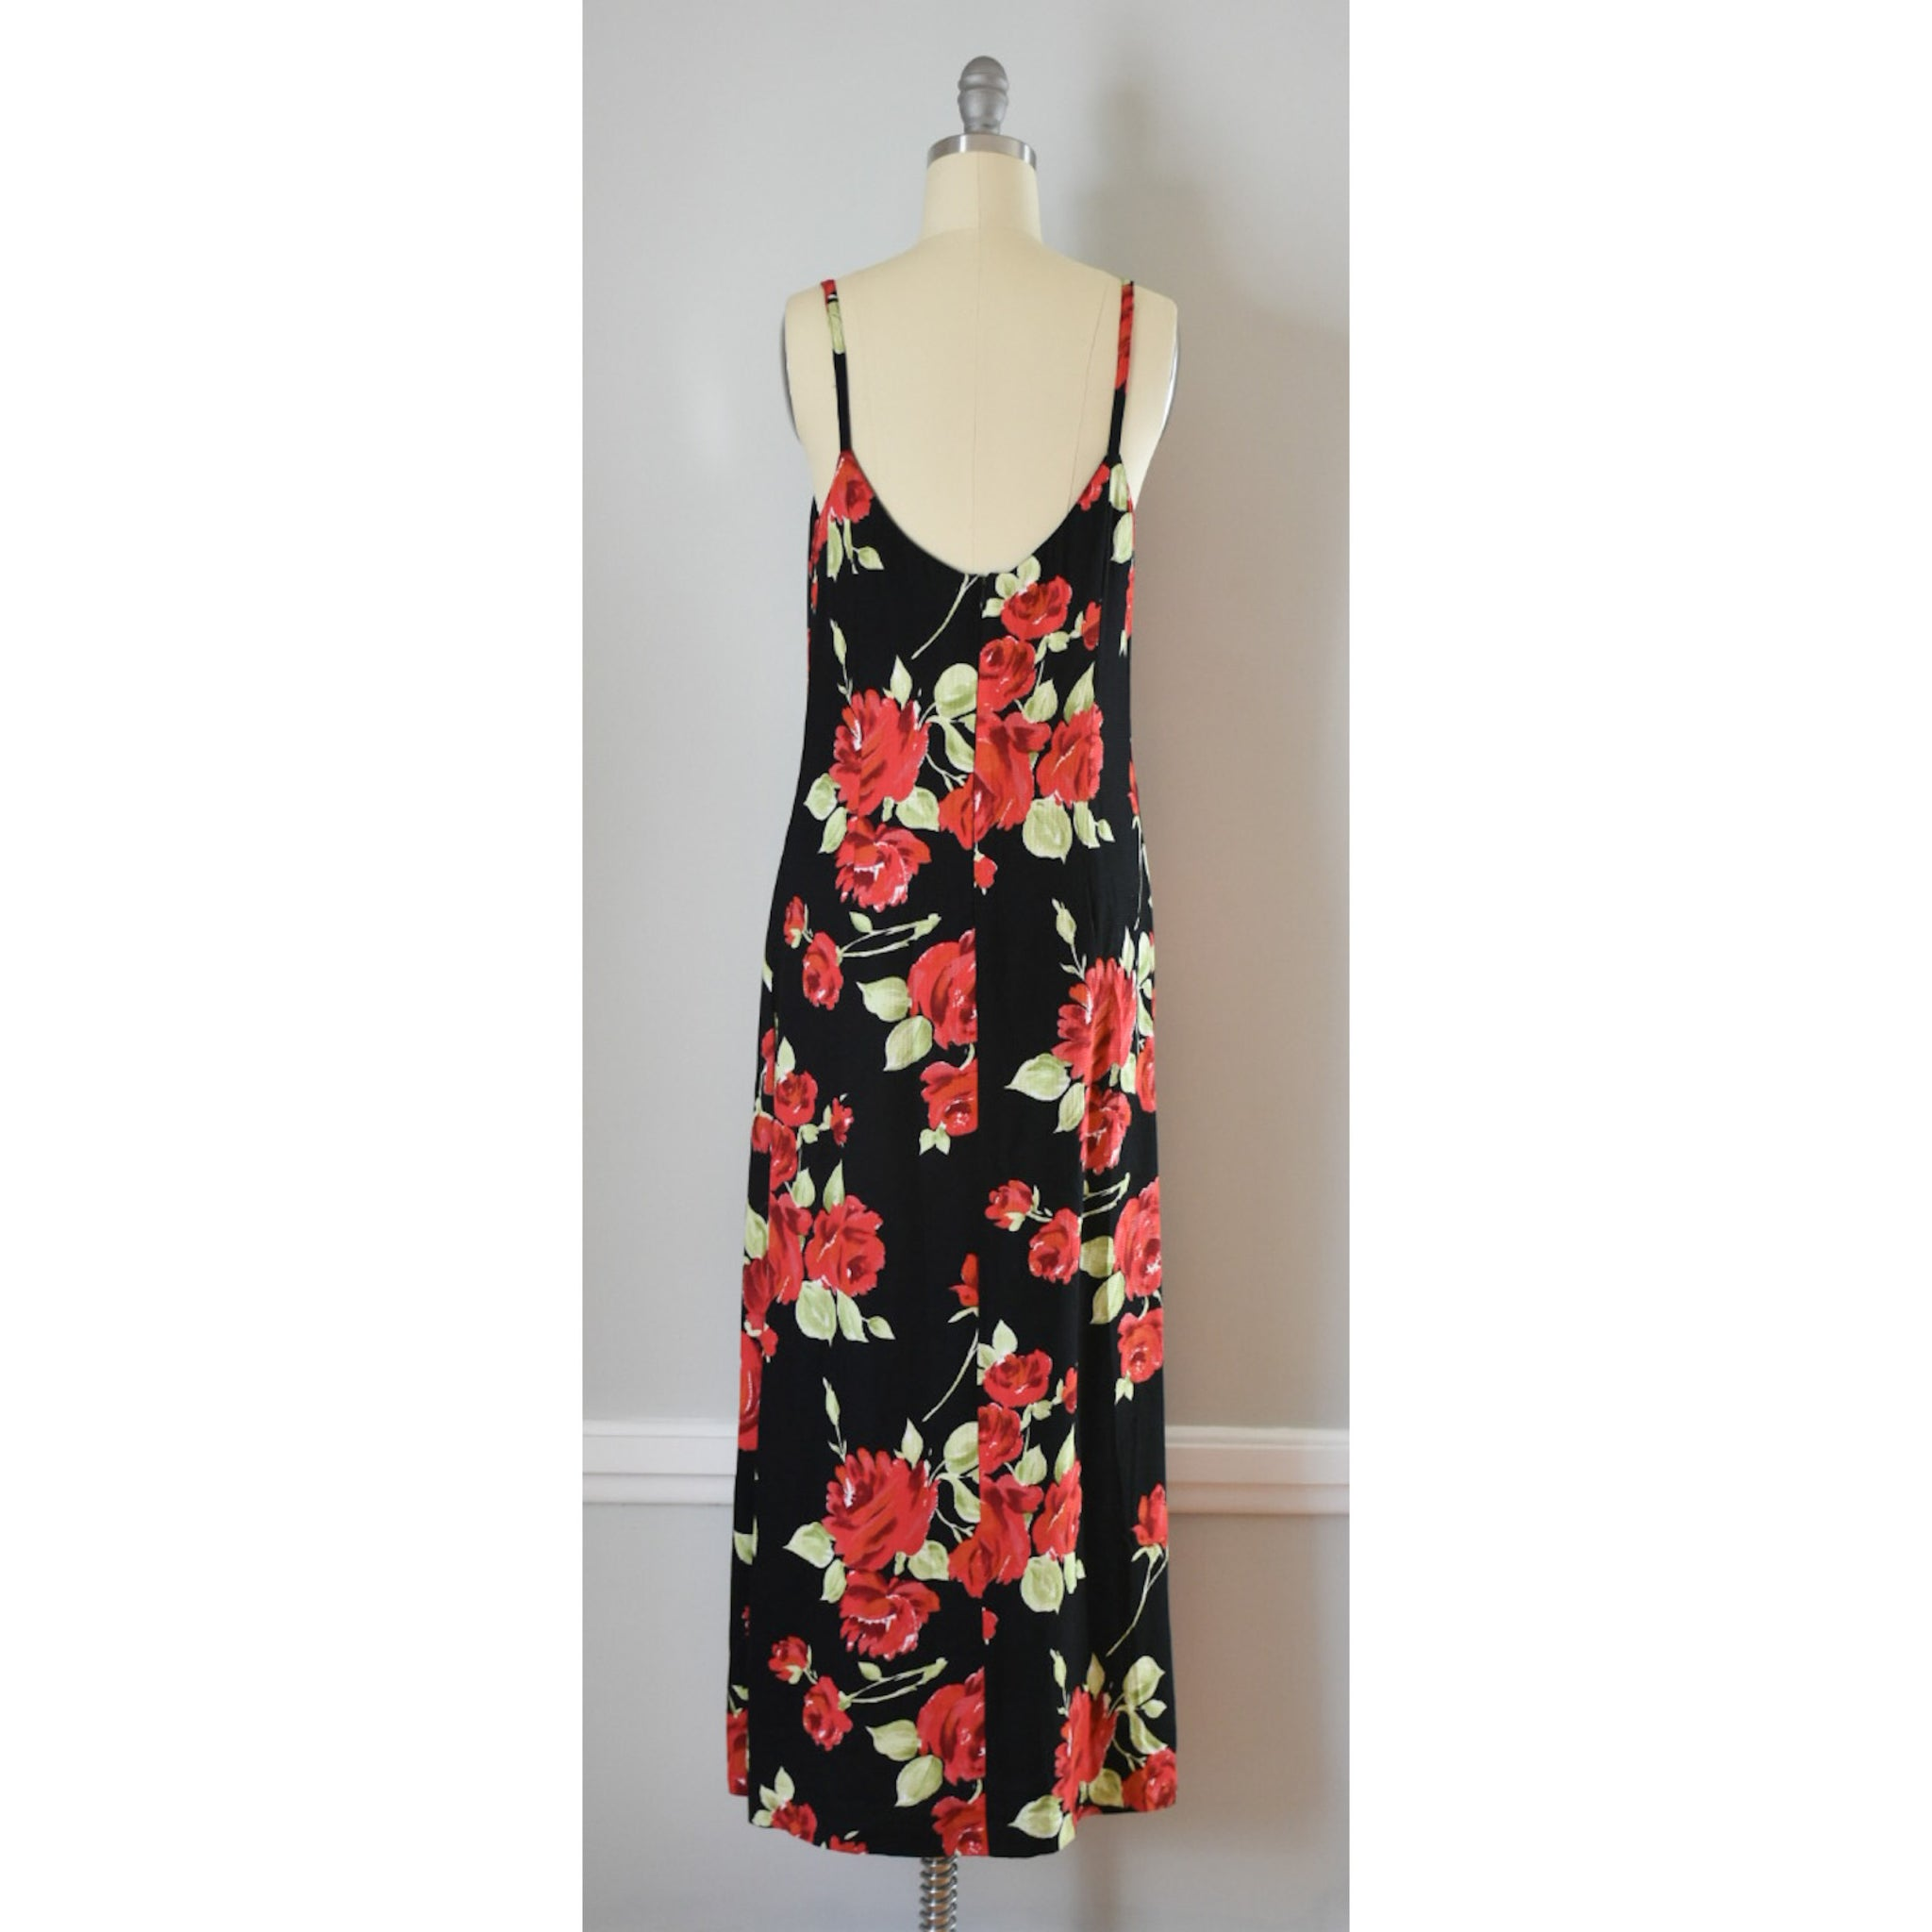 90s Laura Ashley Dress from DuncanLovesTess.com